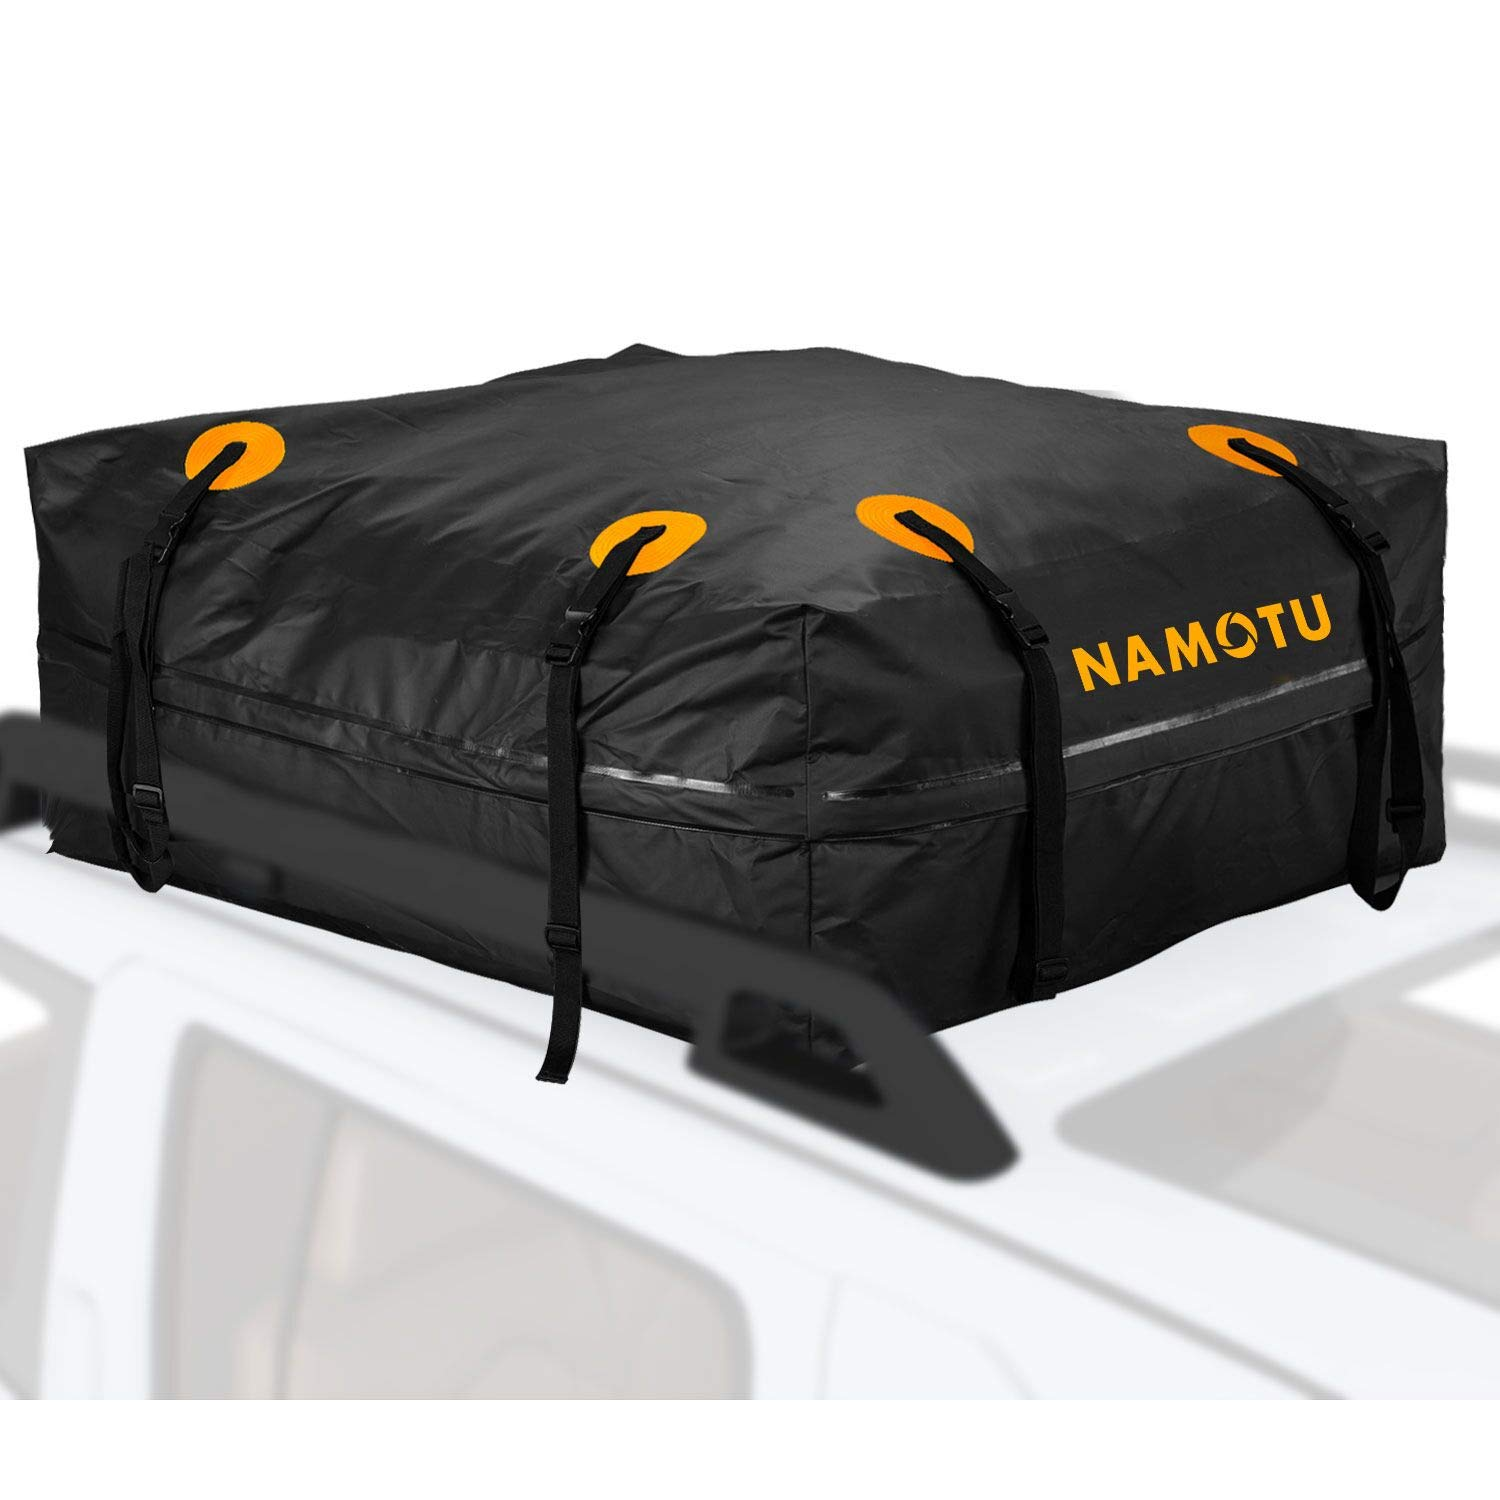 Cargo Bag, Namotu 15 cu. ft Roof Top Cargo Bag Waterproof Car Top Carrier Works with Side Rails, Cross Bars or Rack